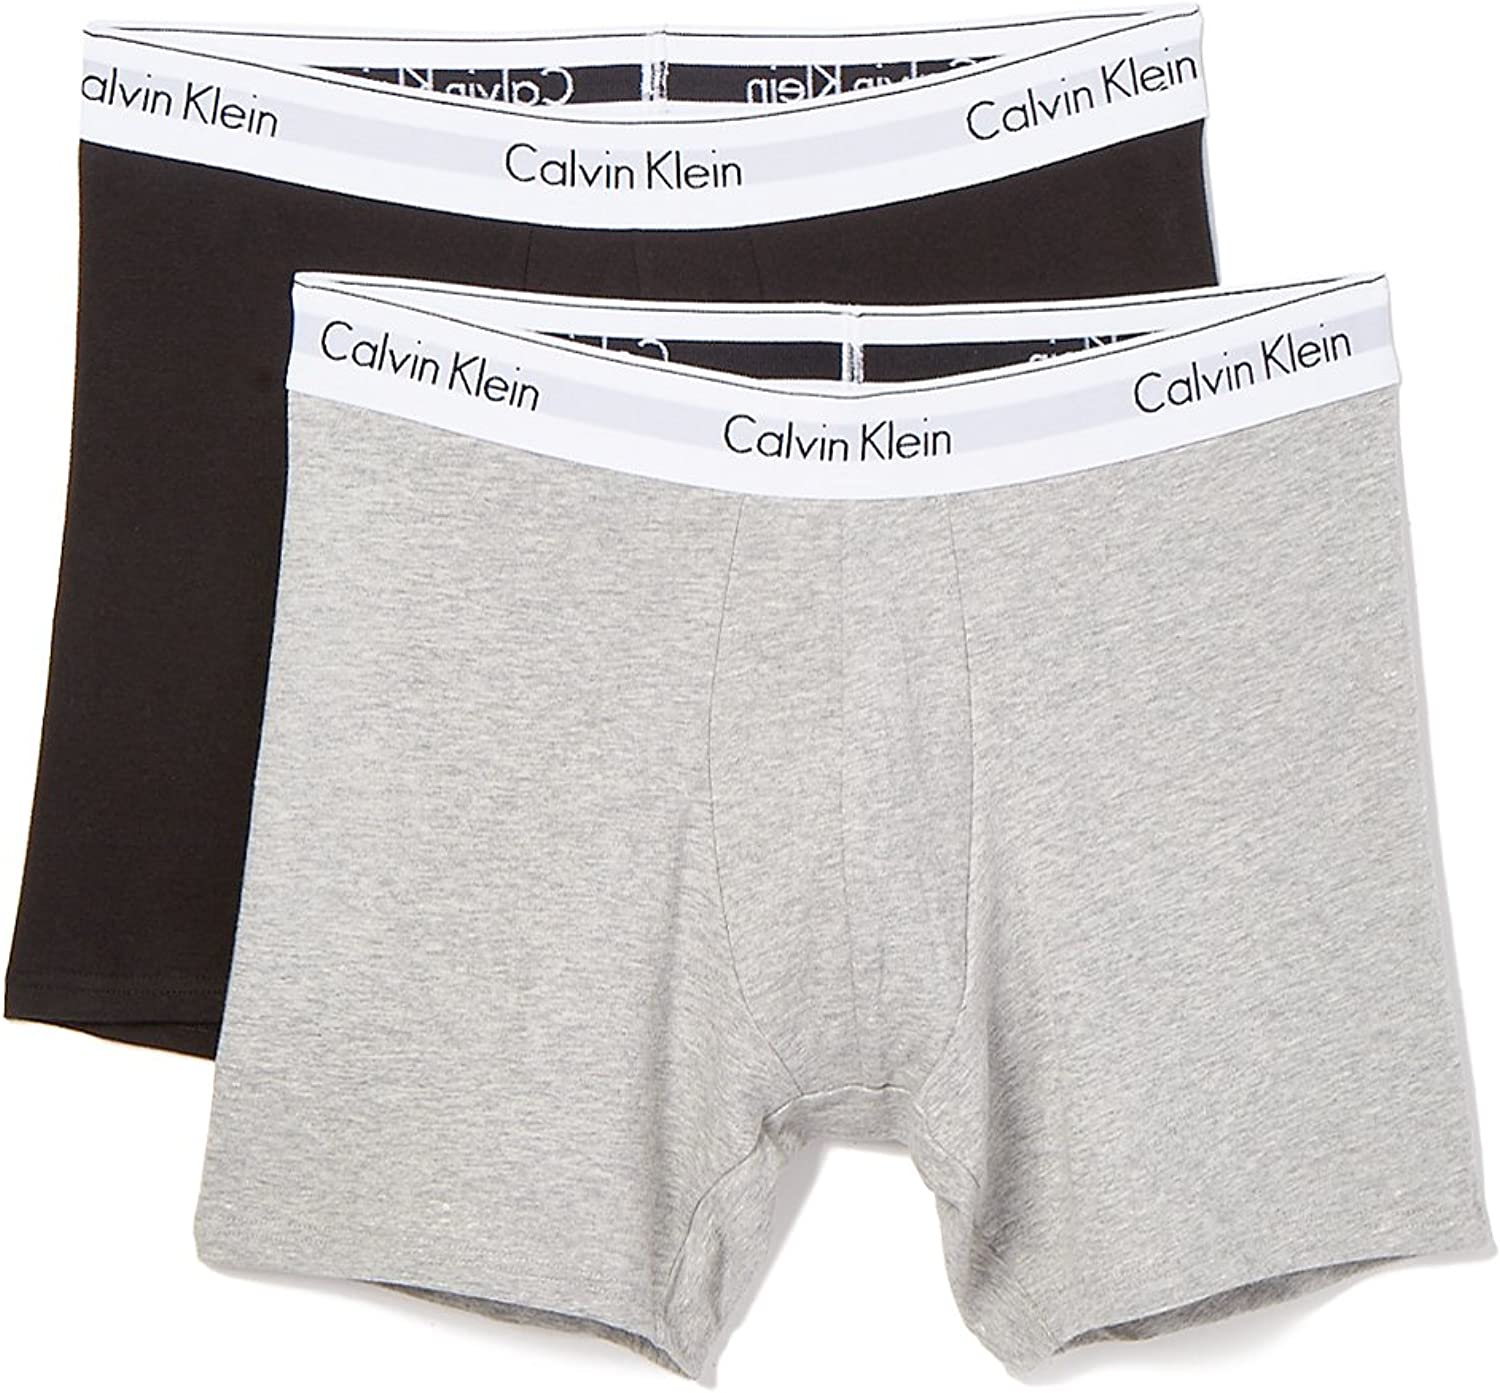 Calvin Klein Men's Modern Cotton Stretch Boxer Briefs